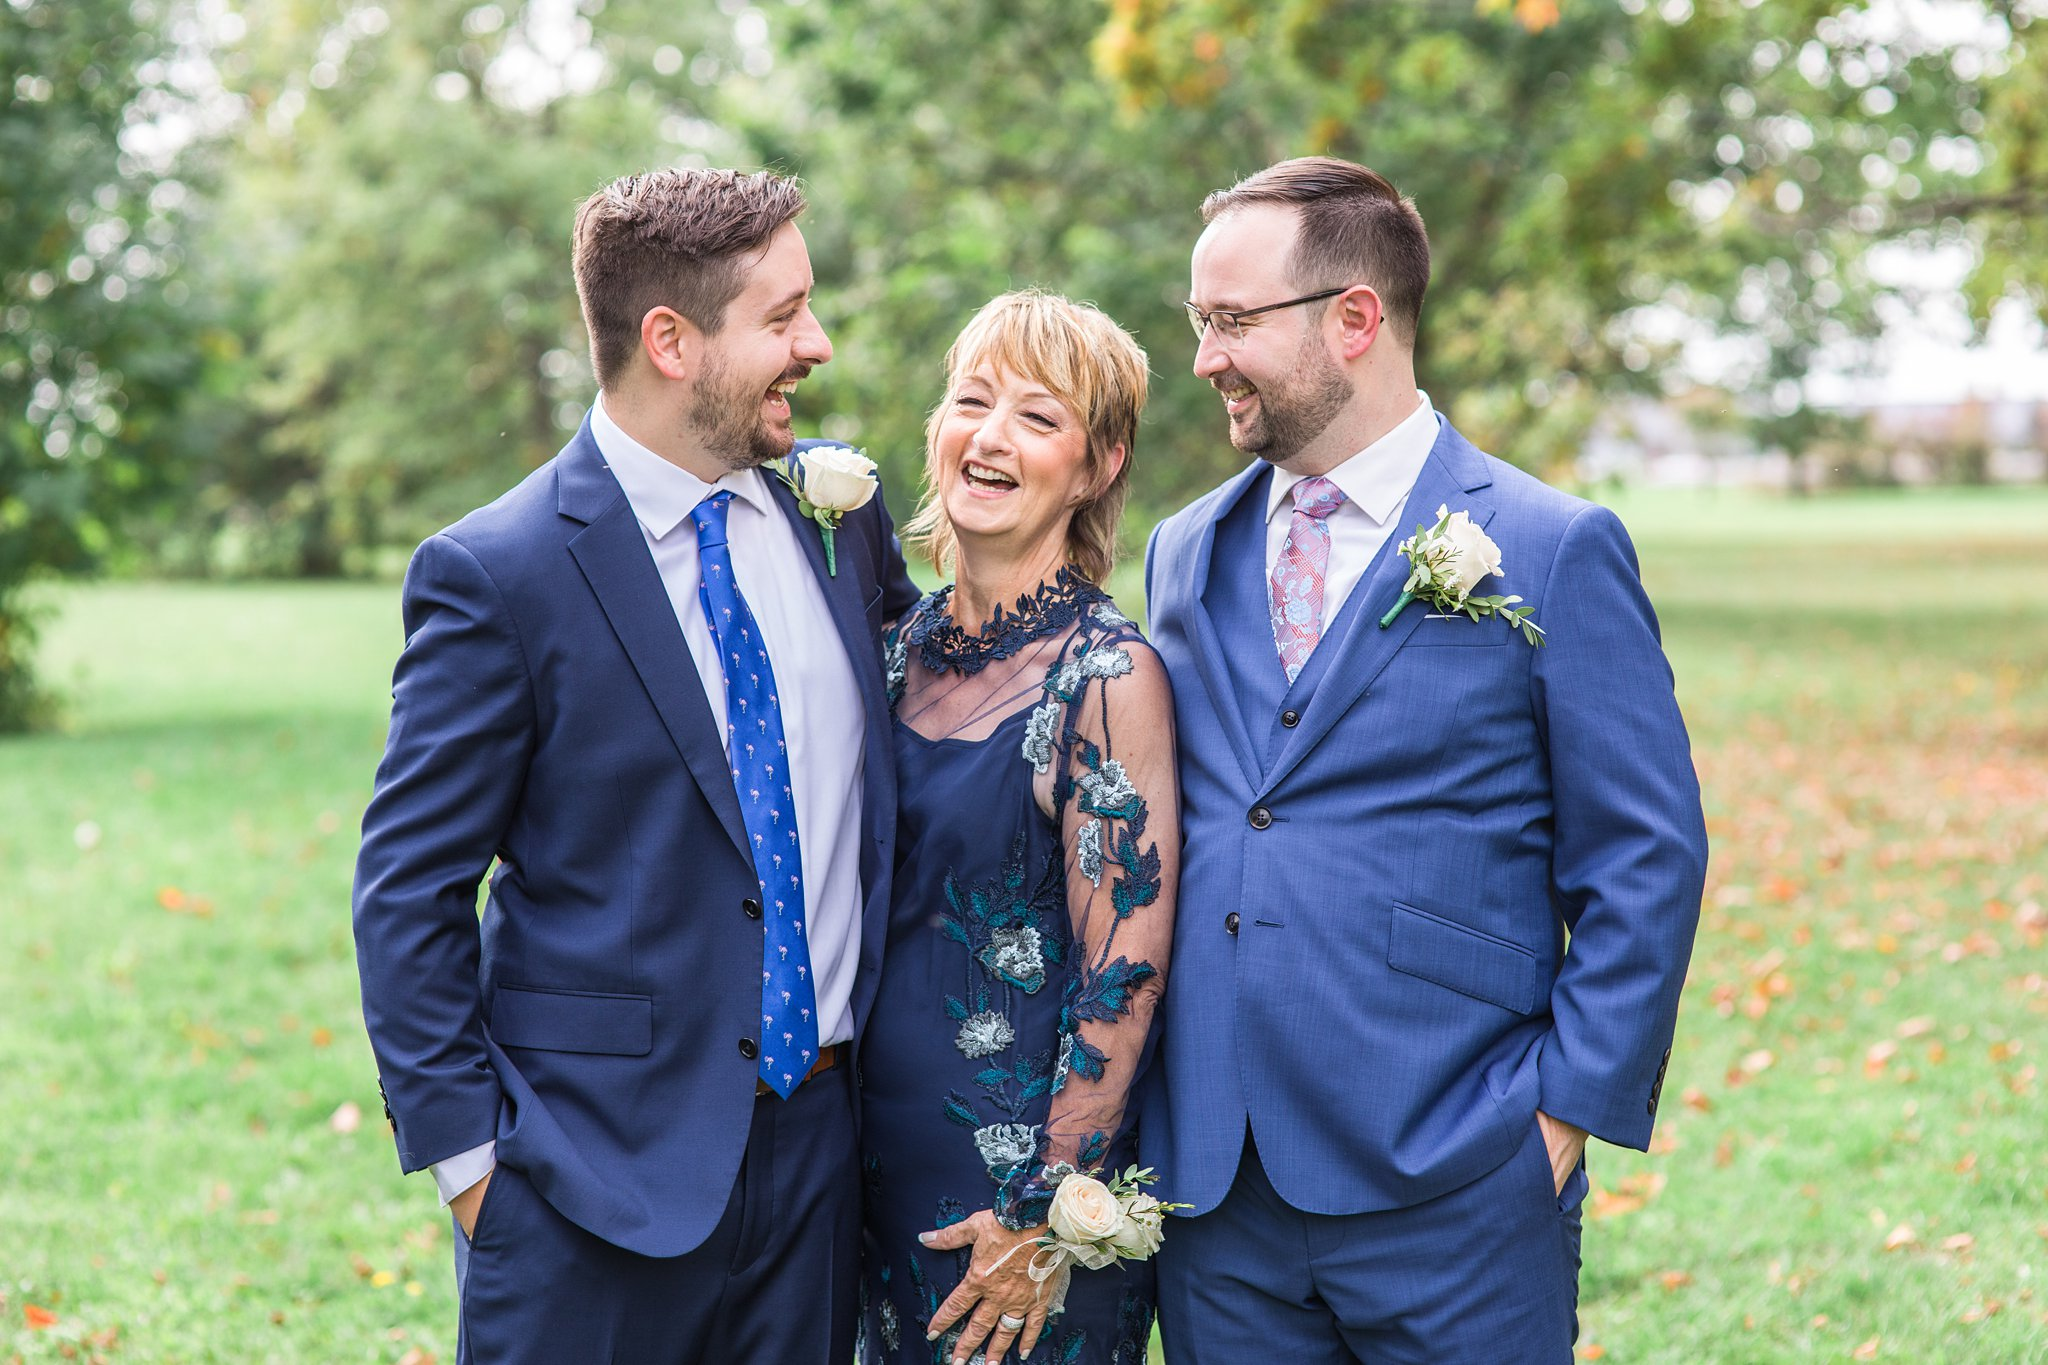 Blue mother of the bride dress, blue suit, Britannia Yacht Club Wedding Photos, Amy Pinder Photography